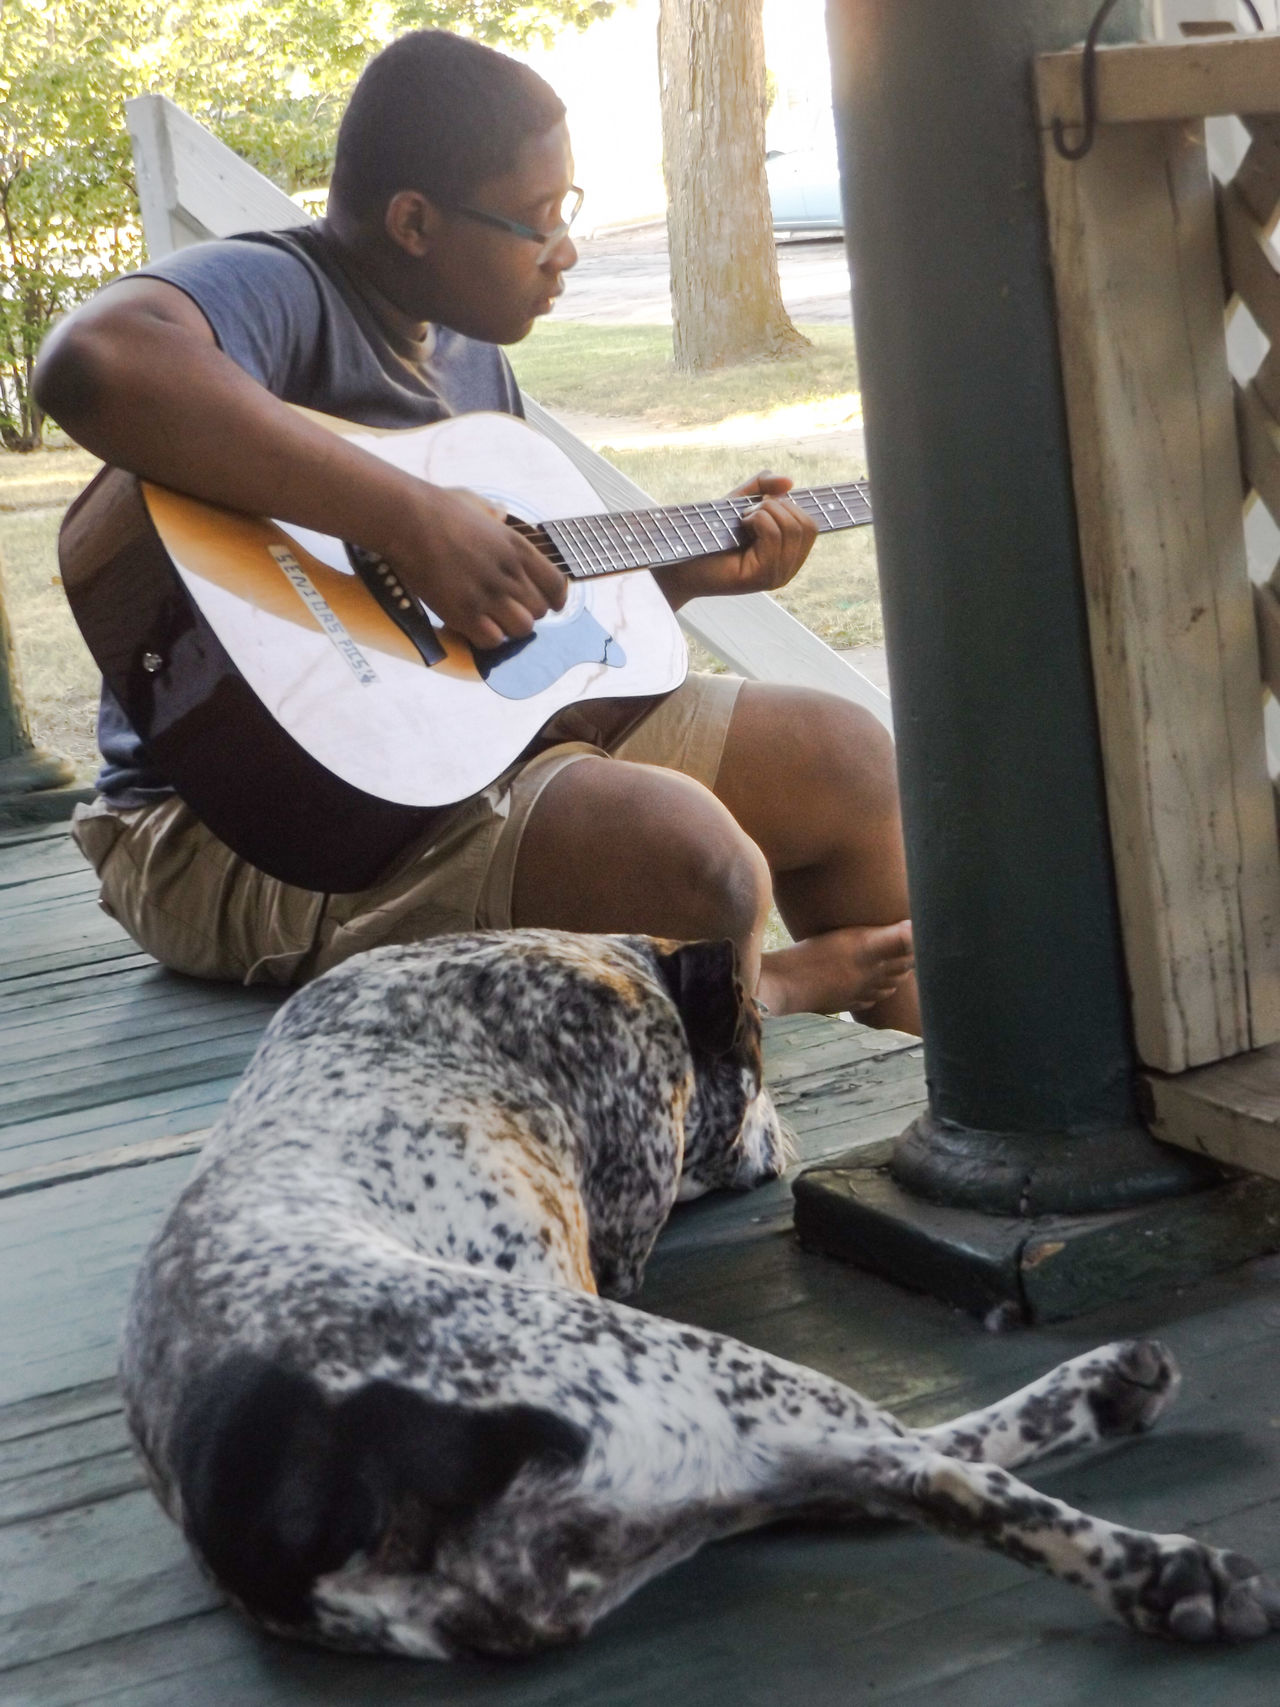 A Boy And His Dog Boy On Porch Dog On A Porch Boy And His Guitar Playing Music Outside Playing Music Jackson Michigan Porch Life Capture The Moment Two Is Better Than One